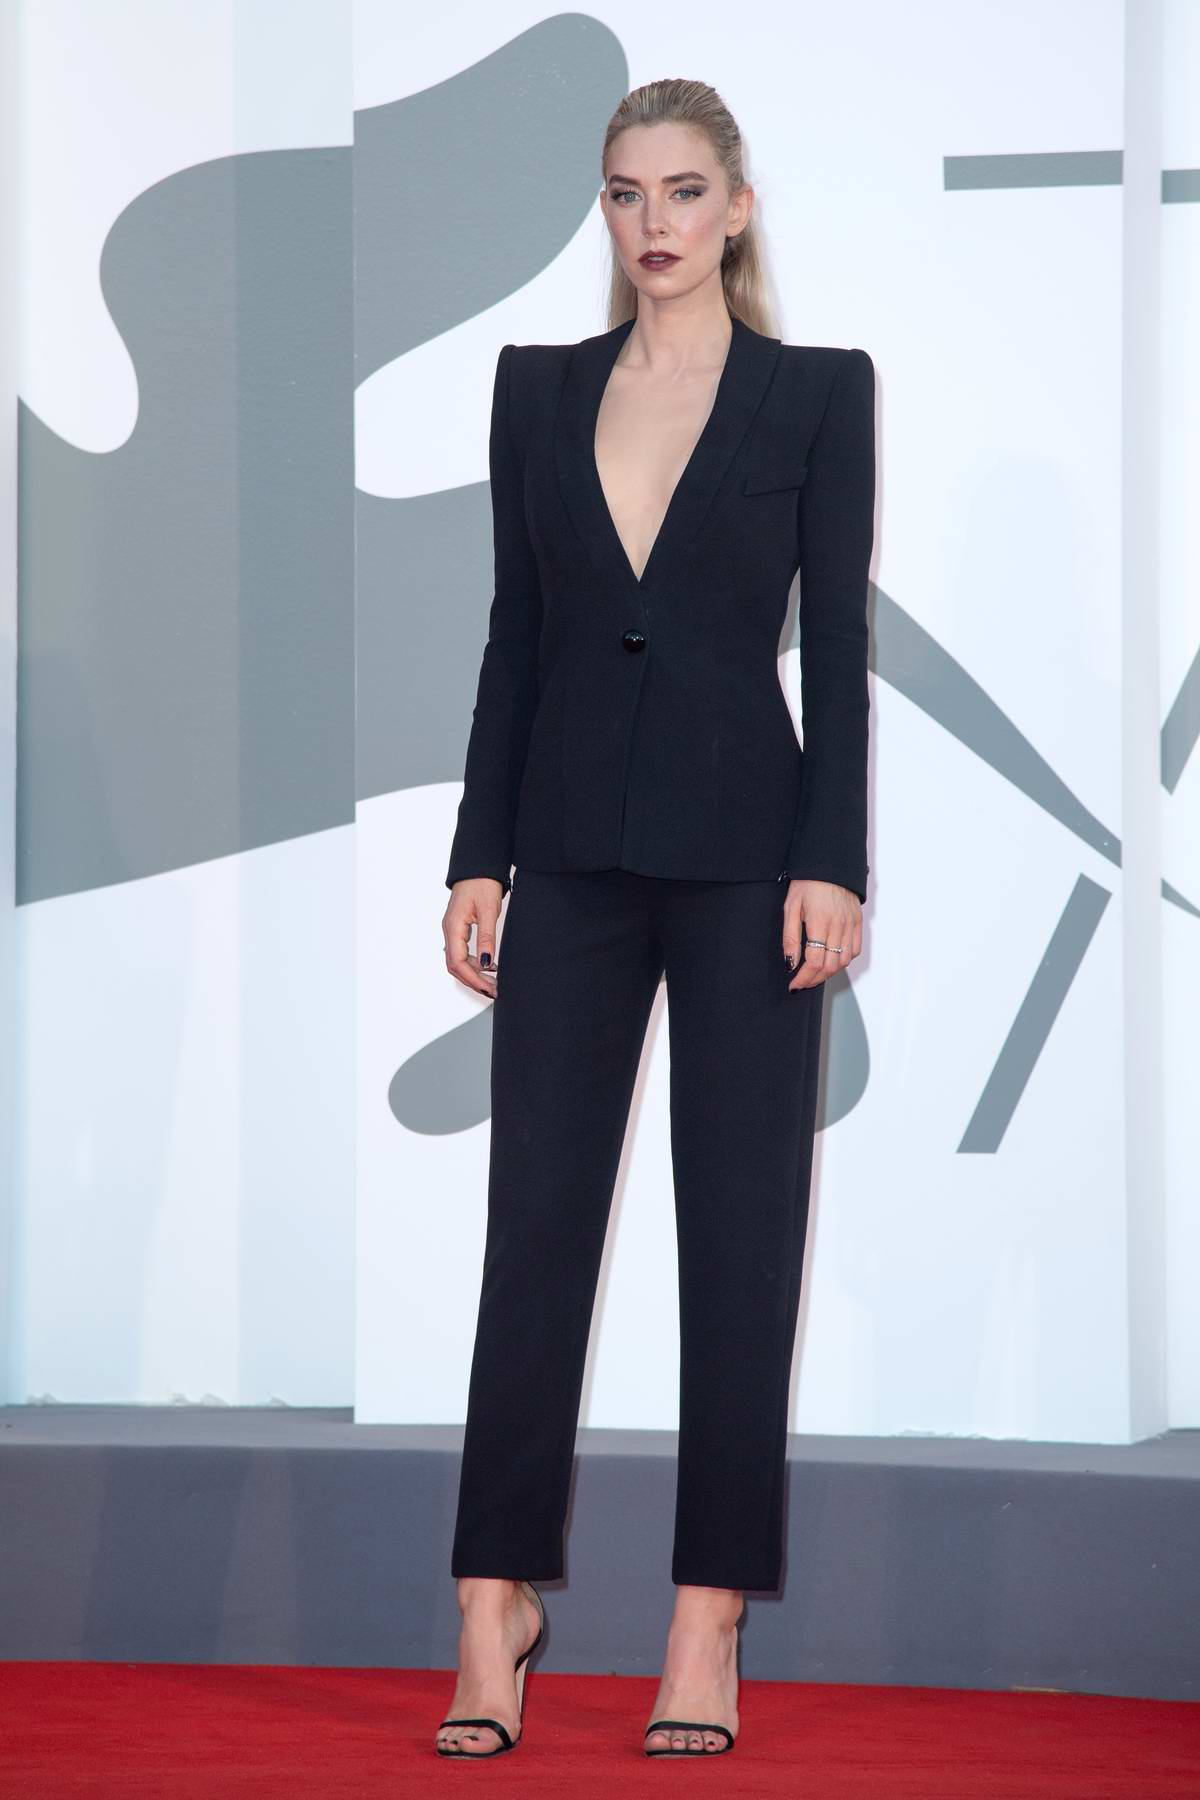 Vanessa Kirby attends the Premiere of 'The World to Come' during the 77th Venice Film Festival in Venice, Italy